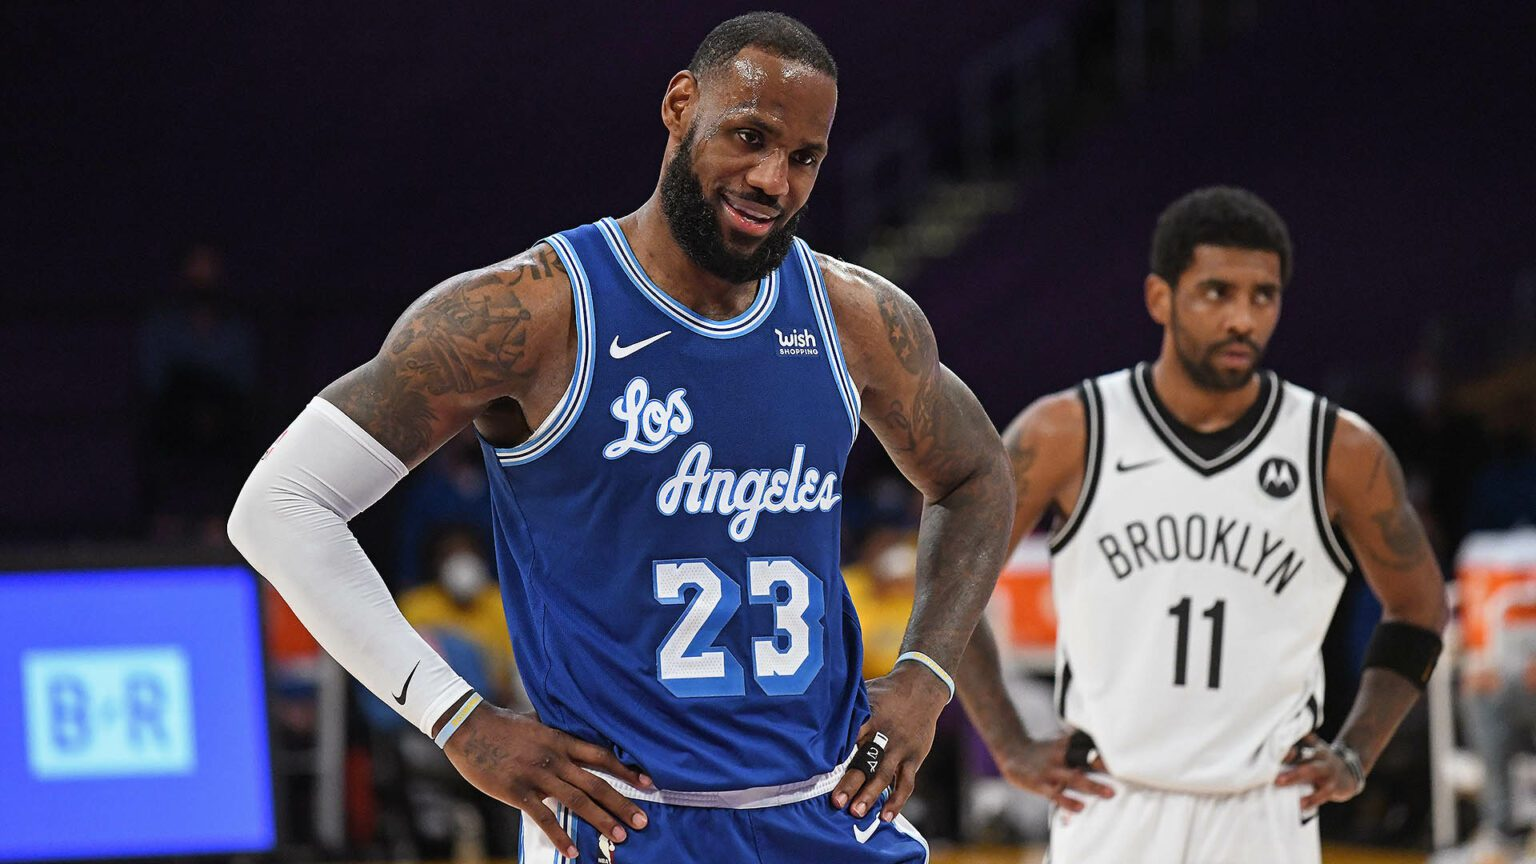 NBA Christmas Day will feature the Lakers and Nets